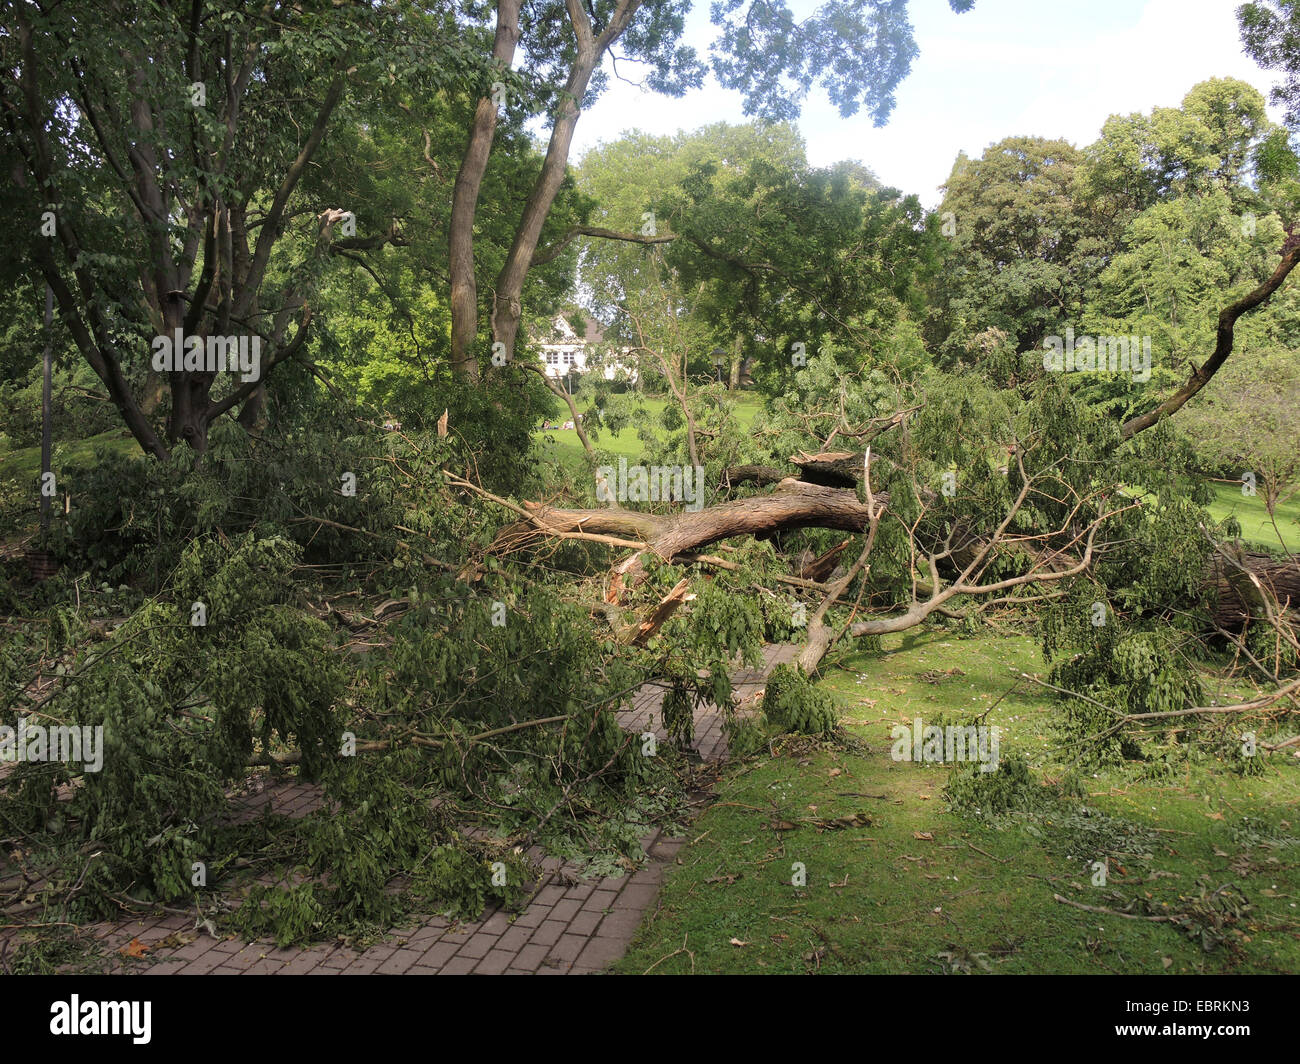 common ash, European ash (Fraxinus excelsior), ravaged city park of Bochum by fallen trees and broken branches, - Stock Image